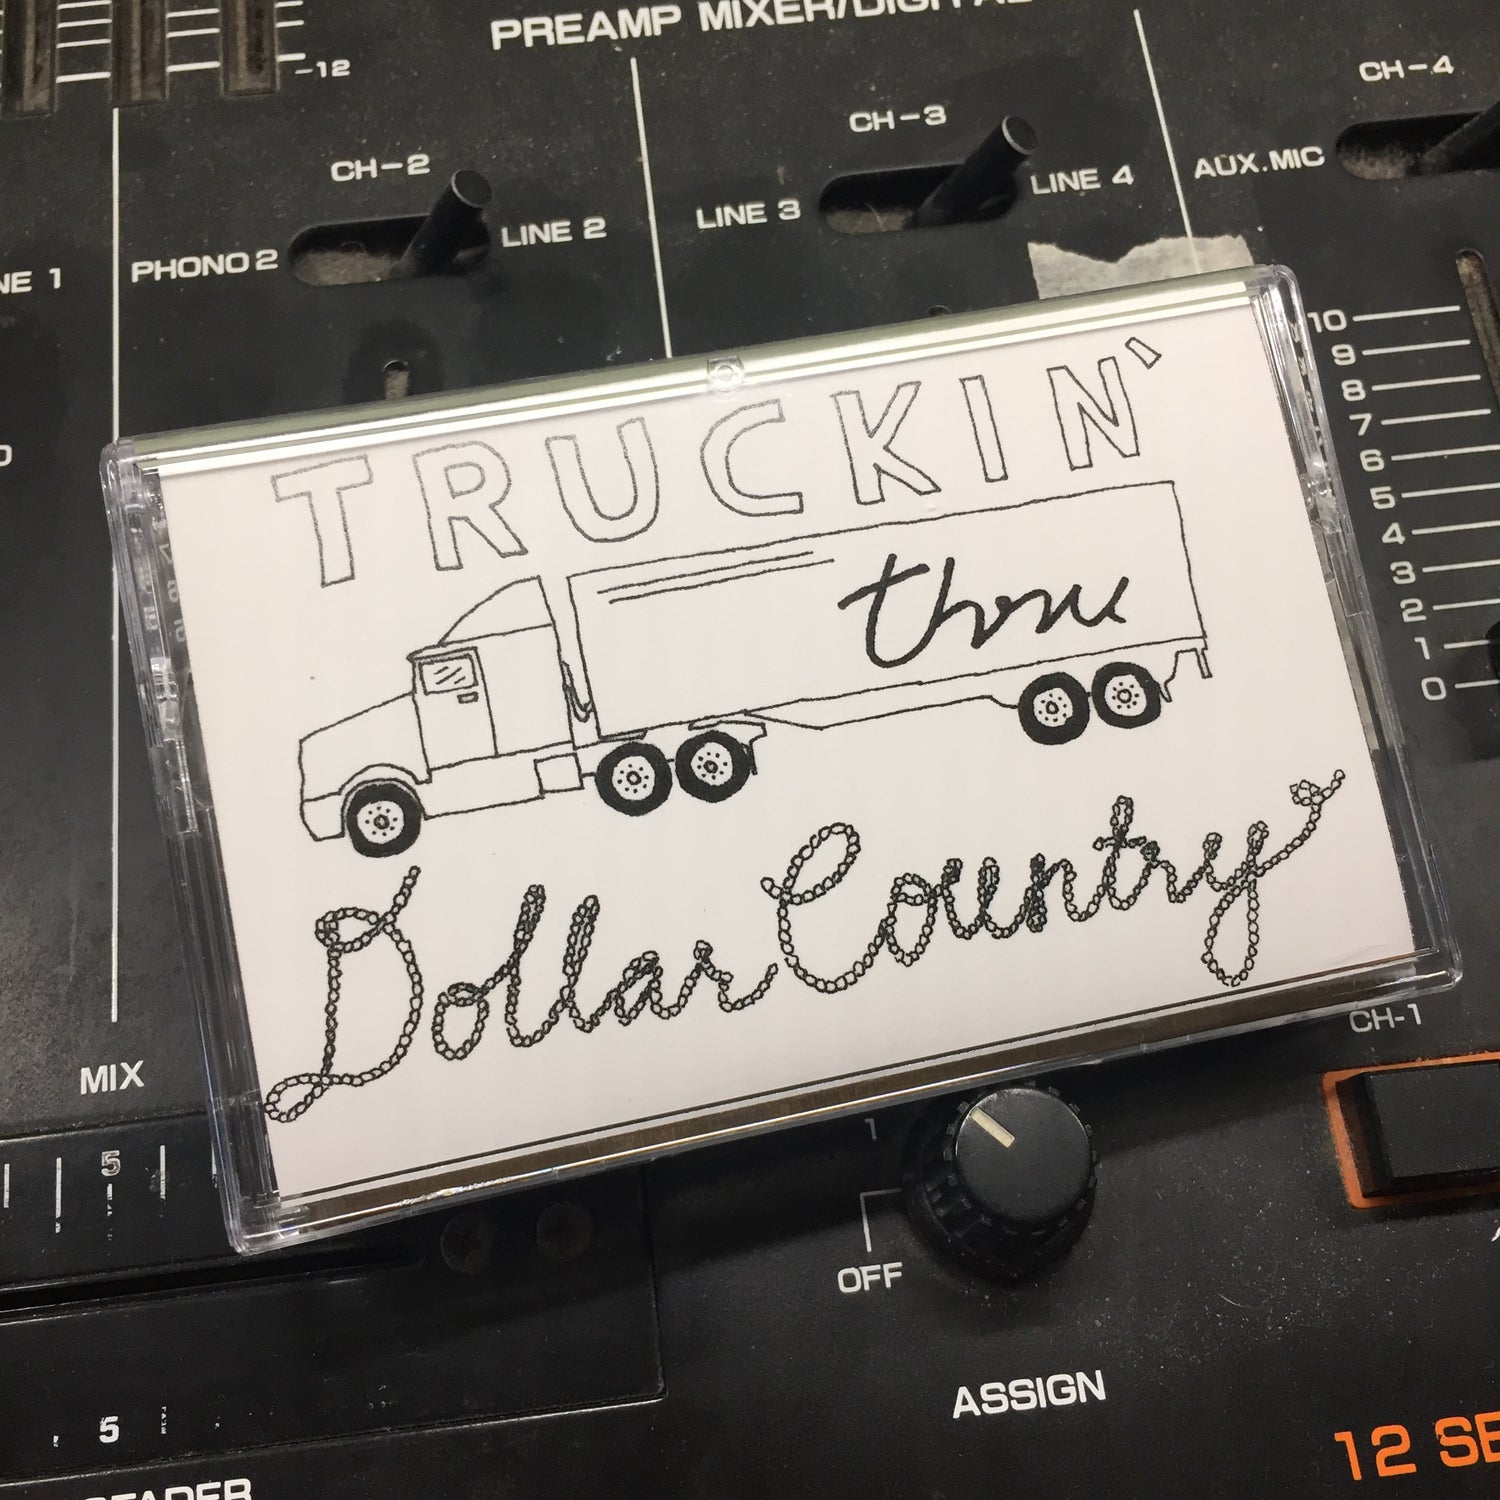 DC Mixtape #3: Truckin' Thru Dollar Country